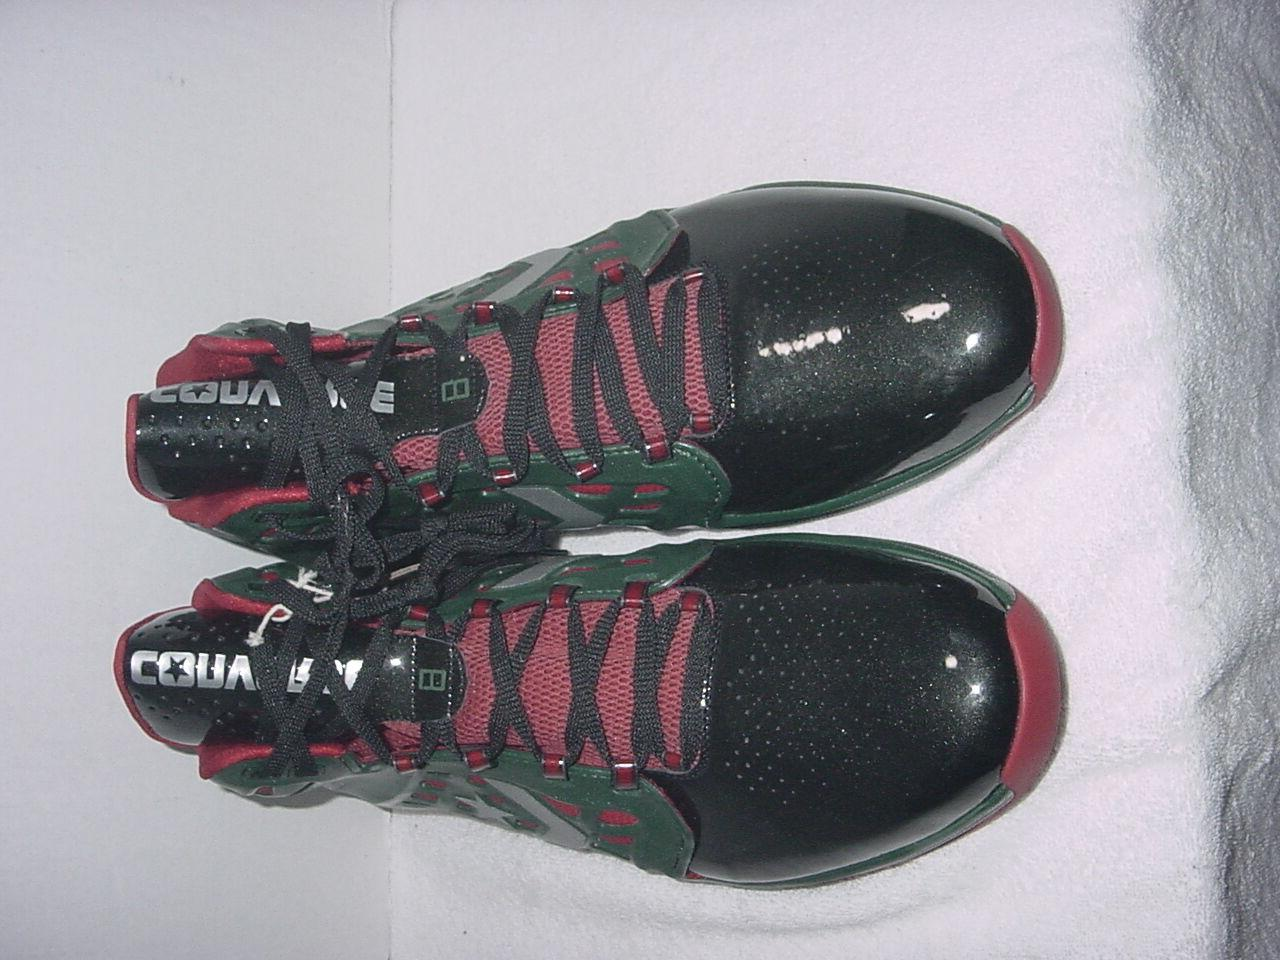 Converse Contain basketball shoes 18 and